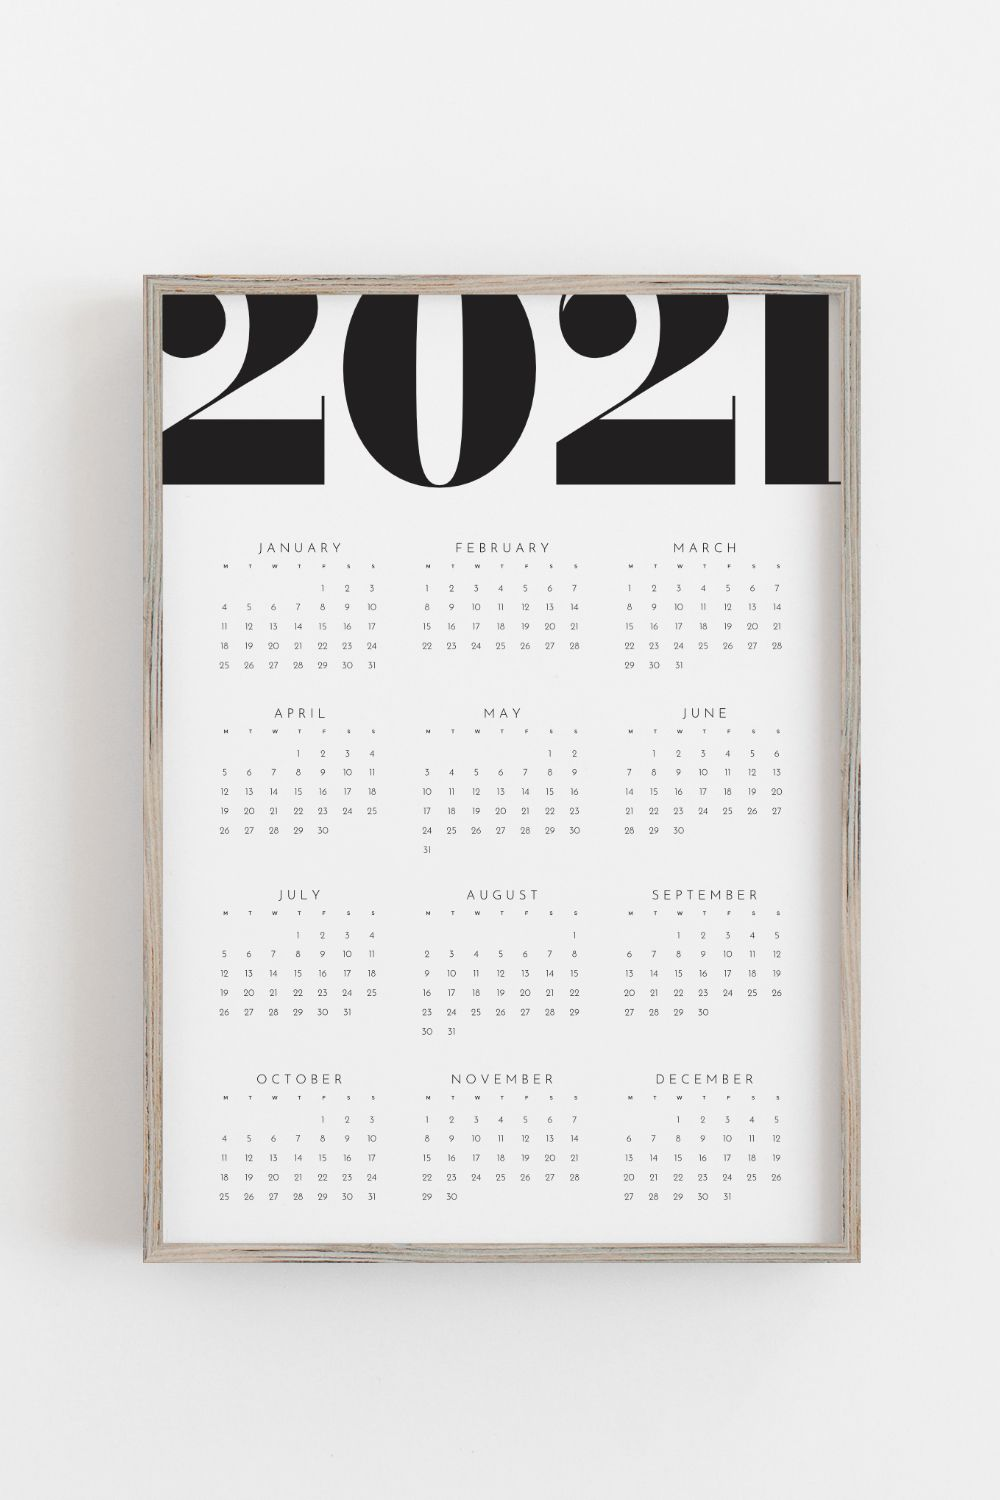 Printable Calendar 2021 Yearly Wall Calendar Year At A Glance Instant Download Black And White A1 Portrait Minimalist Design In 2021 Printable Calendar Template Printable Calendar Calendar Template